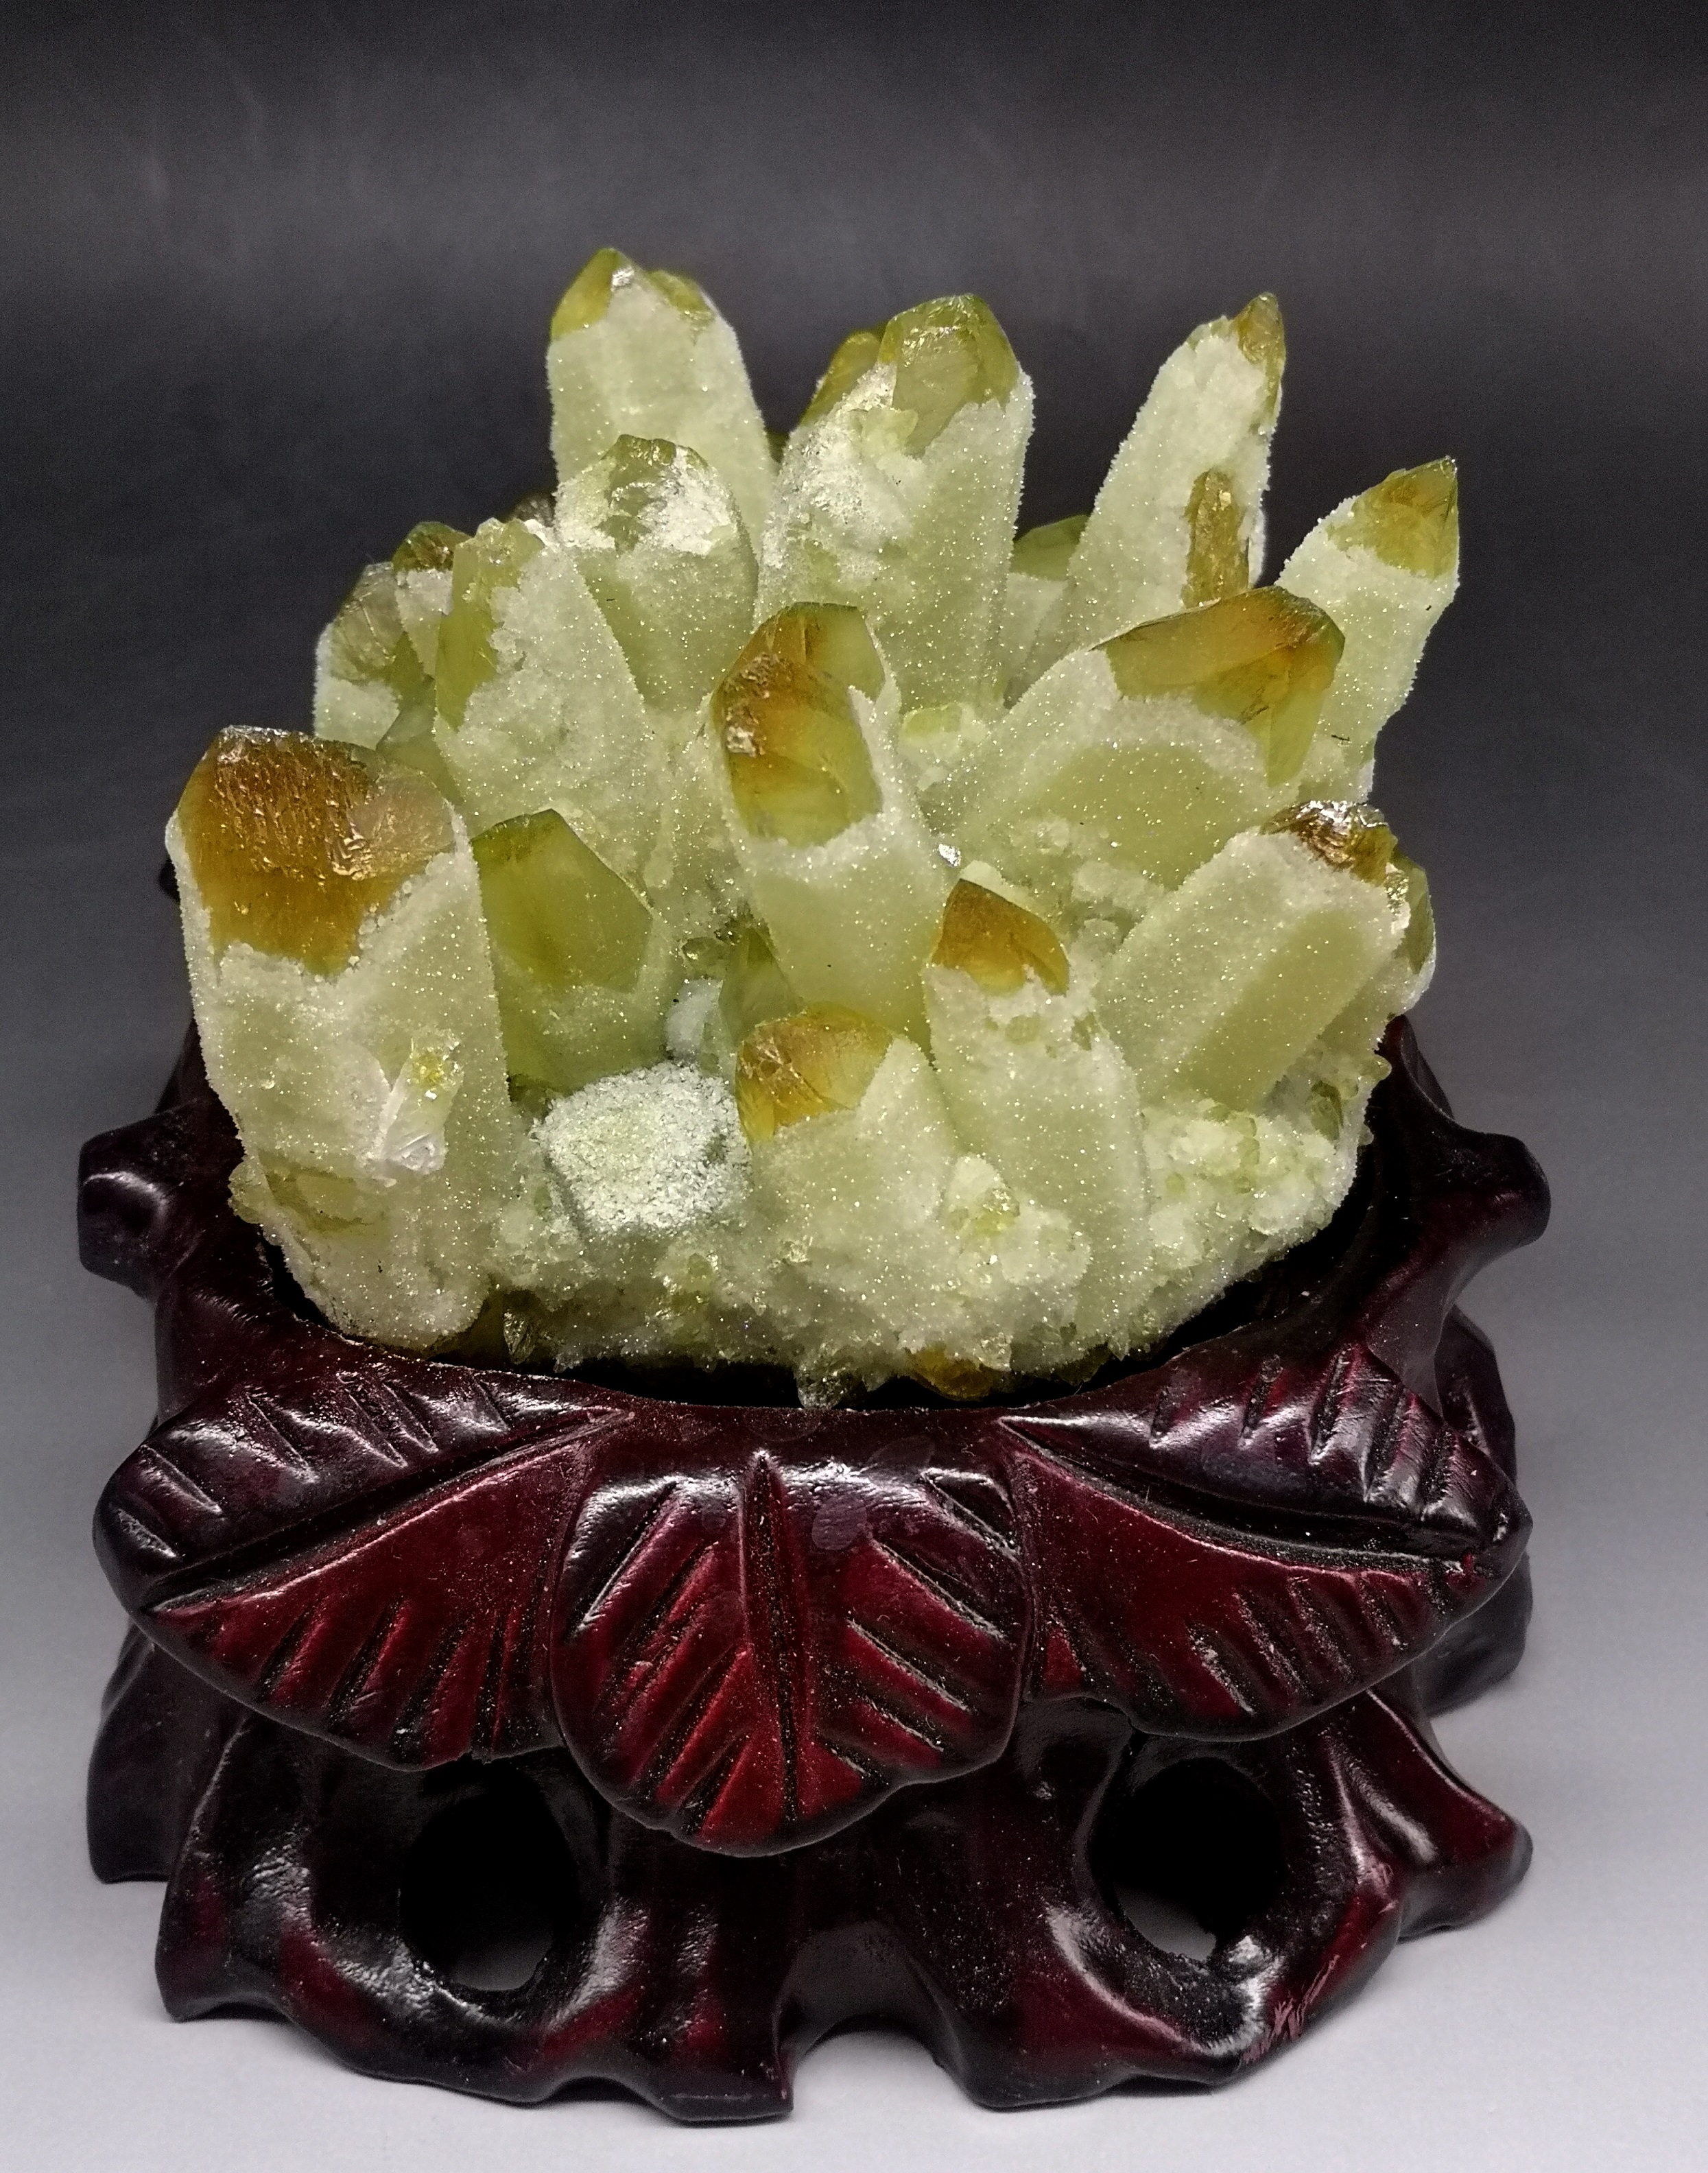 813g Natural yellow Ghost Phantom Quartz Crystal Cluster Crystals and stones Healing Specimen Decoration Free gift